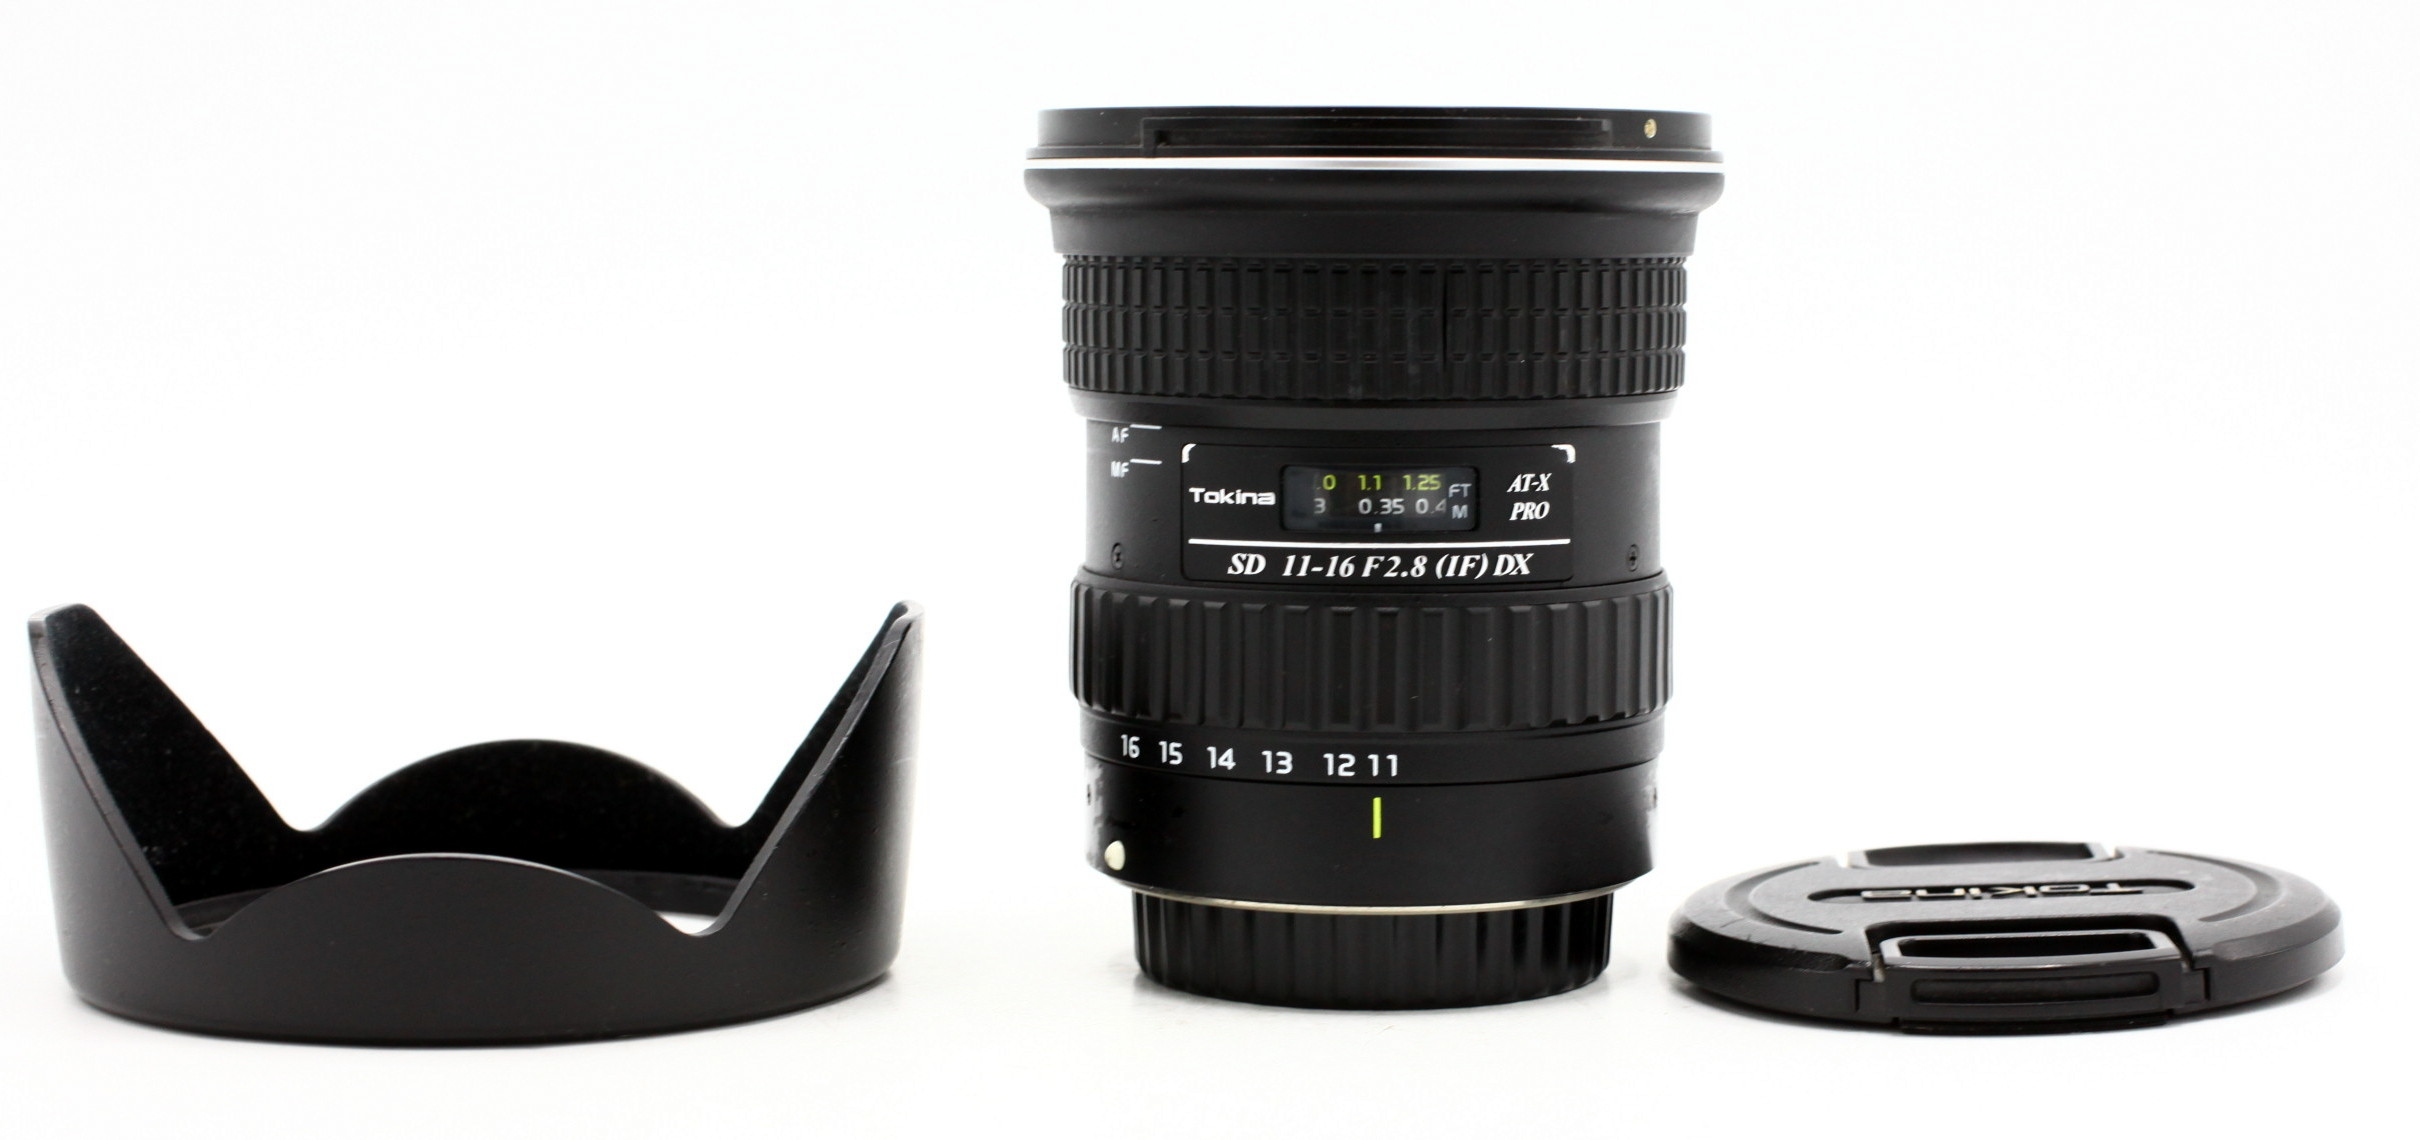 Tokina 11-16mm F/2.8 AT-X Pro IF DX Canon + zonnekap BH-77 occasion